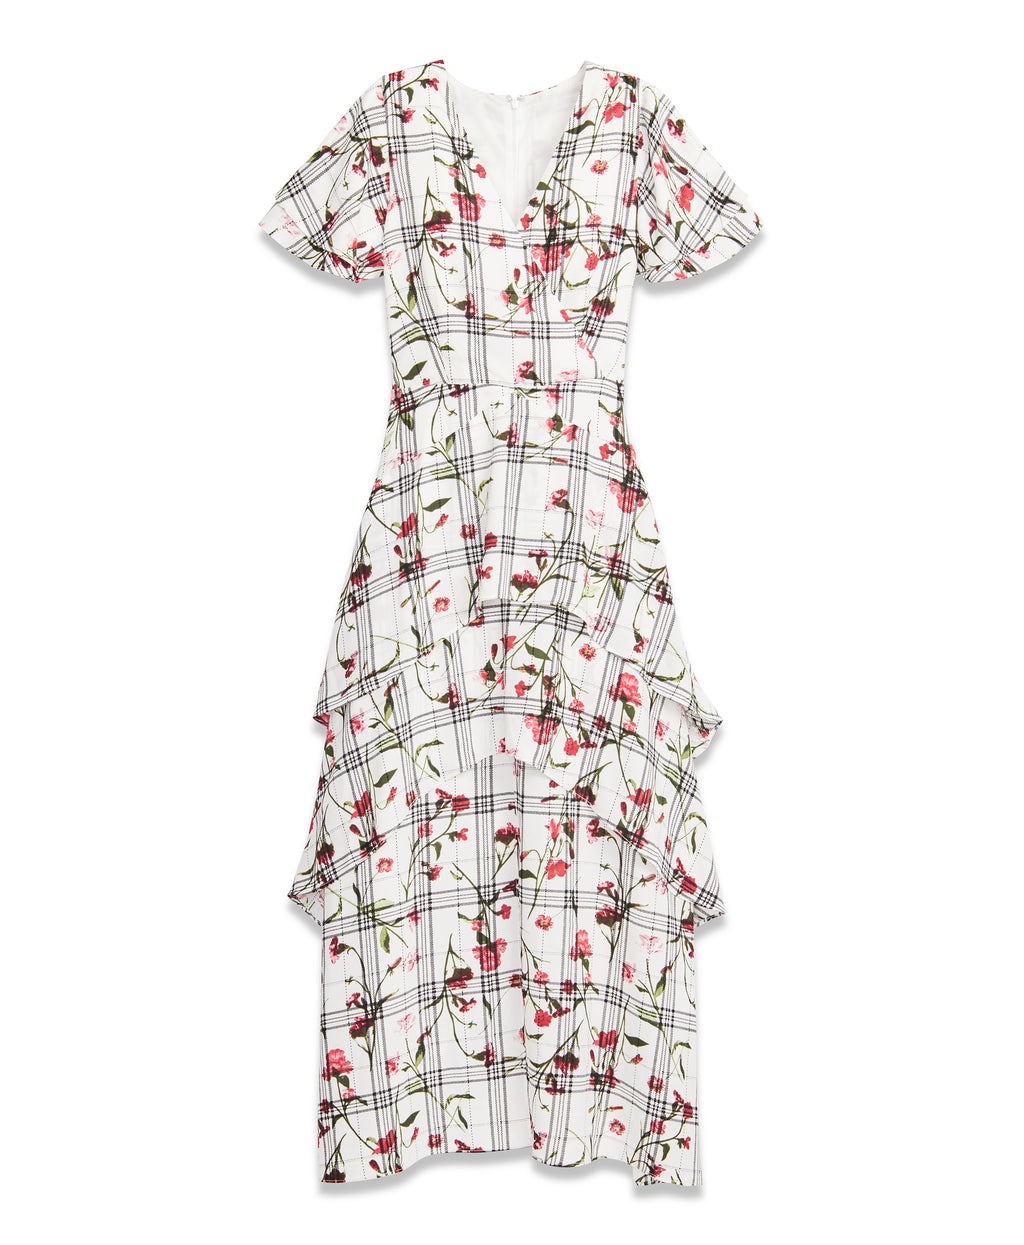 Floral Plaid Maxi Dress | Floral Plaid Maxi Dress